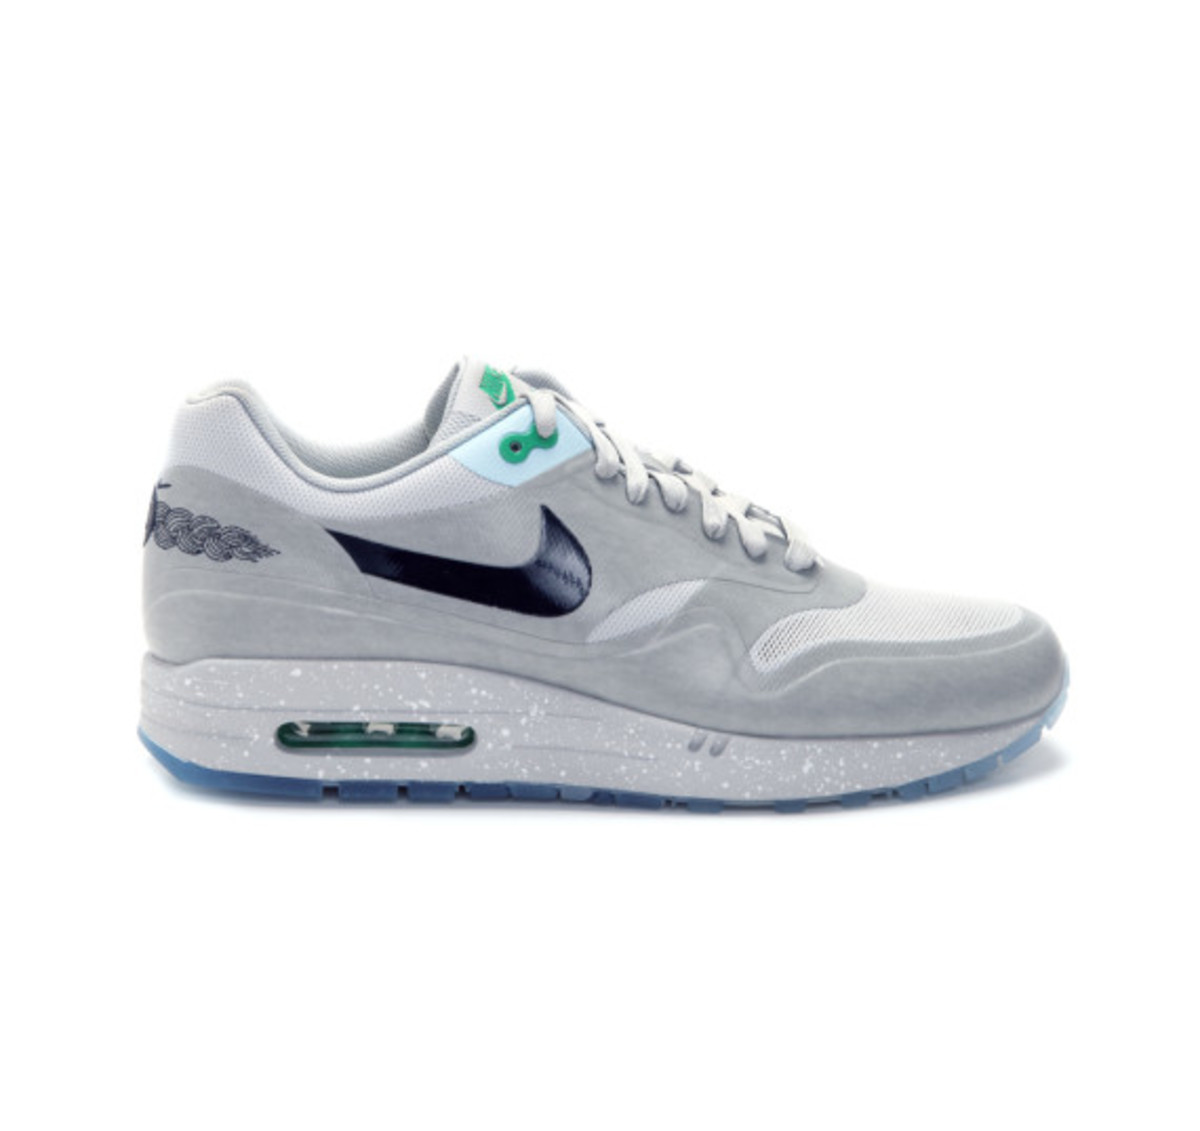 clot-nike-air-max-1-sp-004